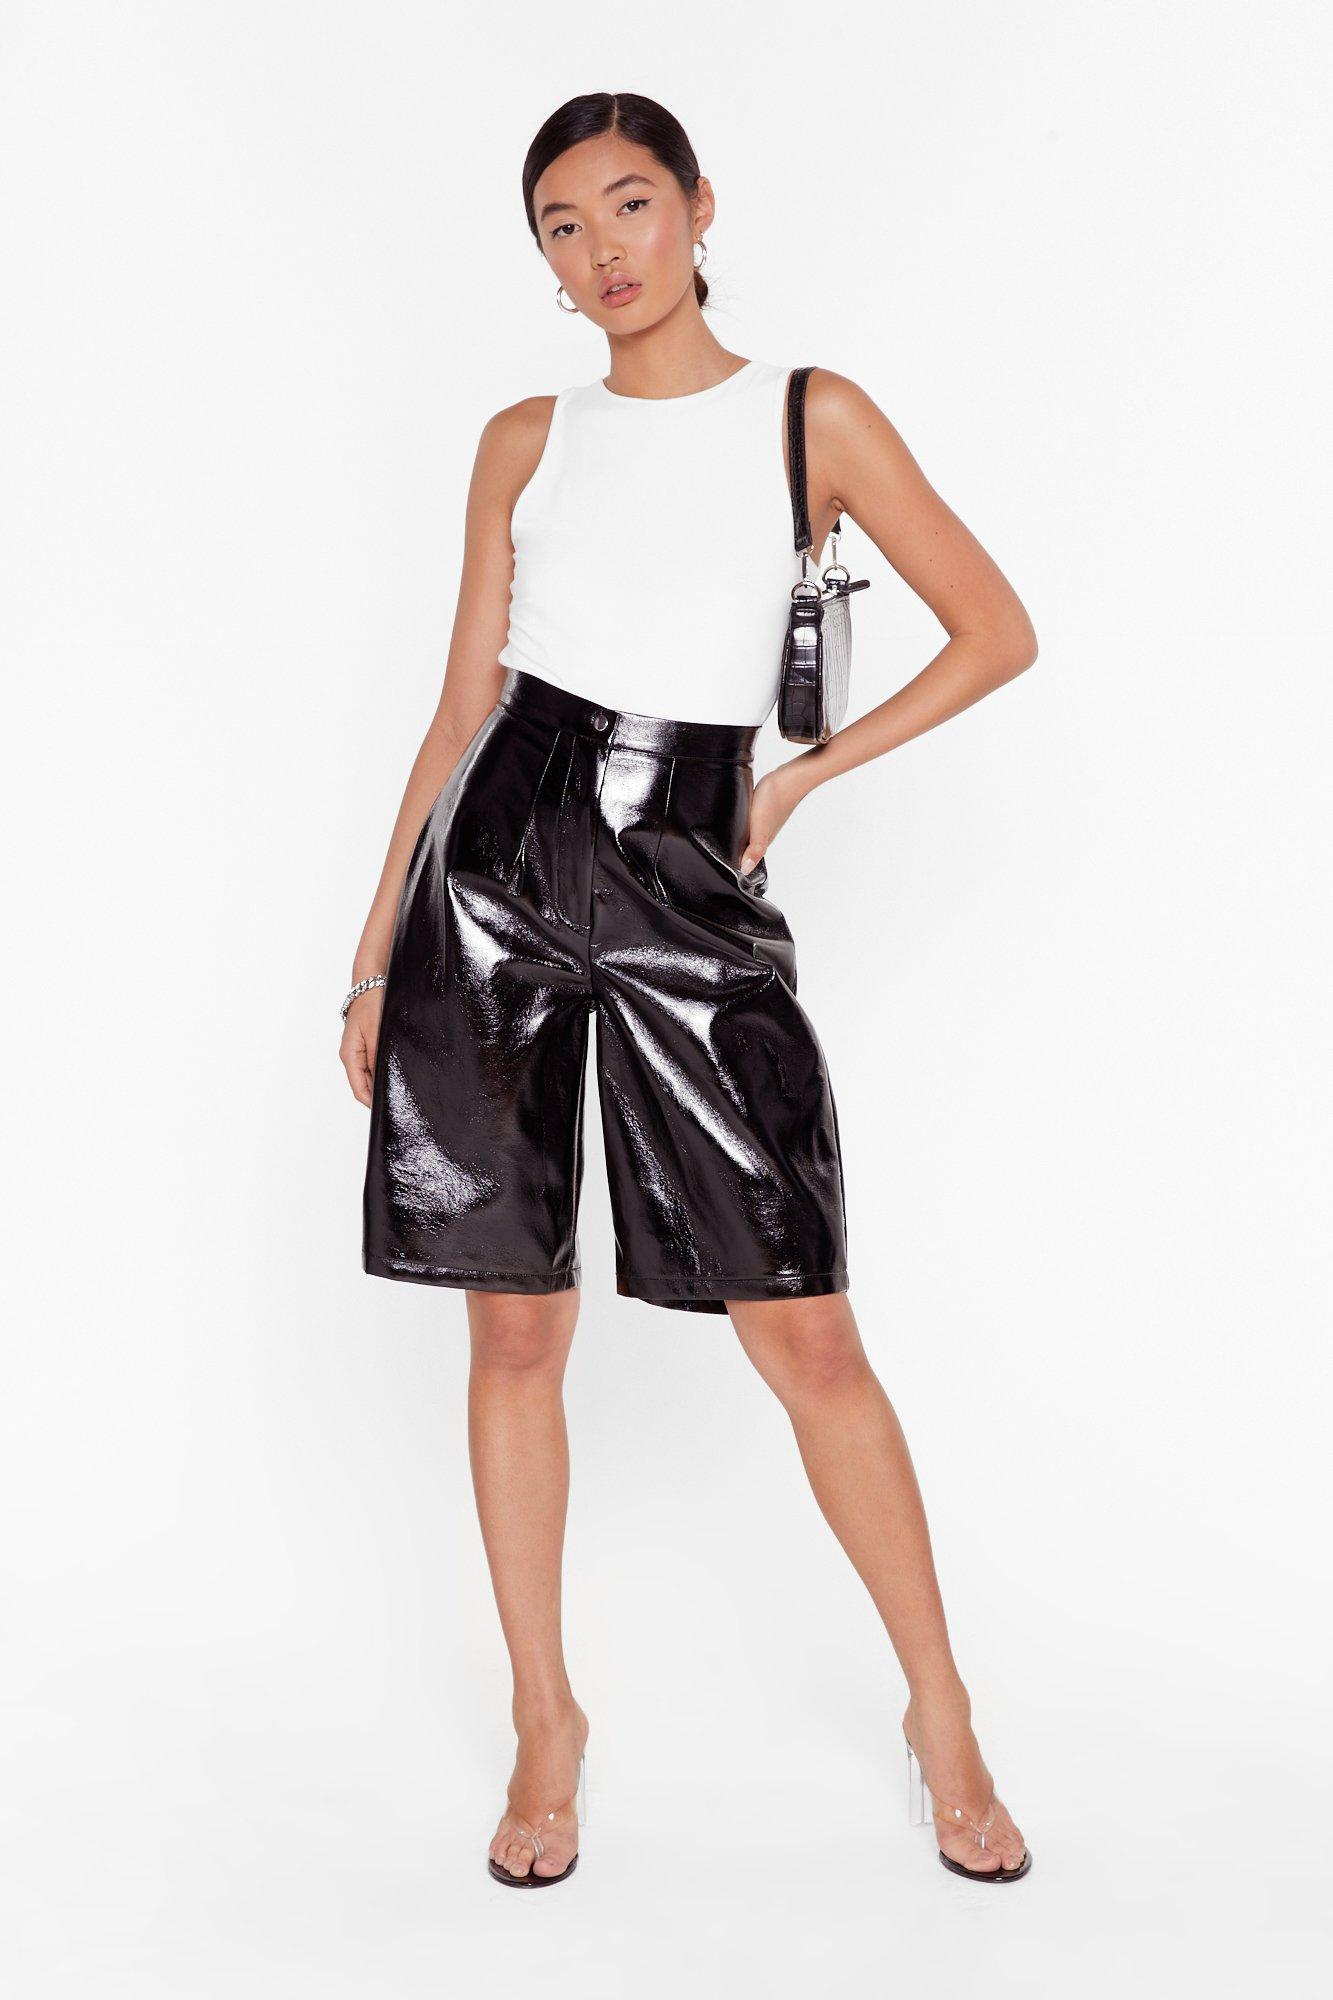 Image of It's Been too Longline Vinyl High-Waisted Shorts